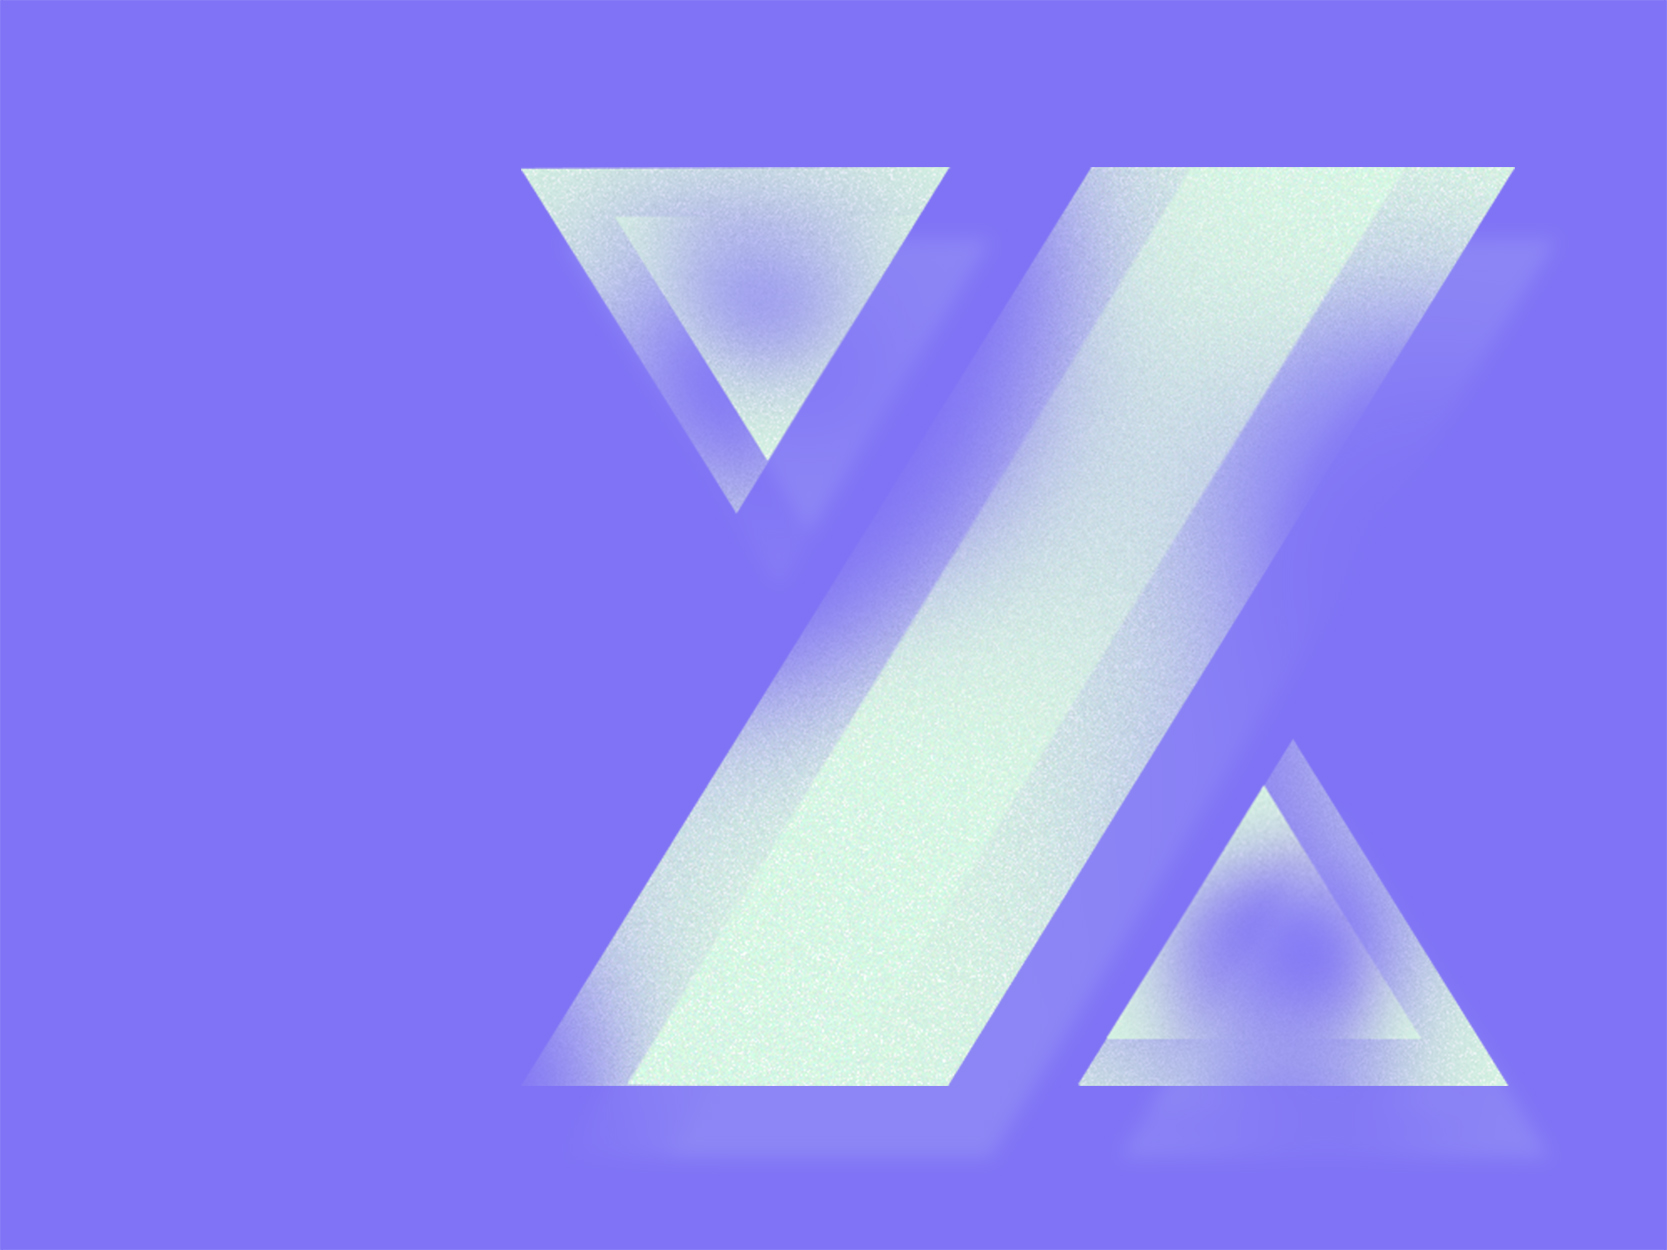 X by kasim chiu via direct